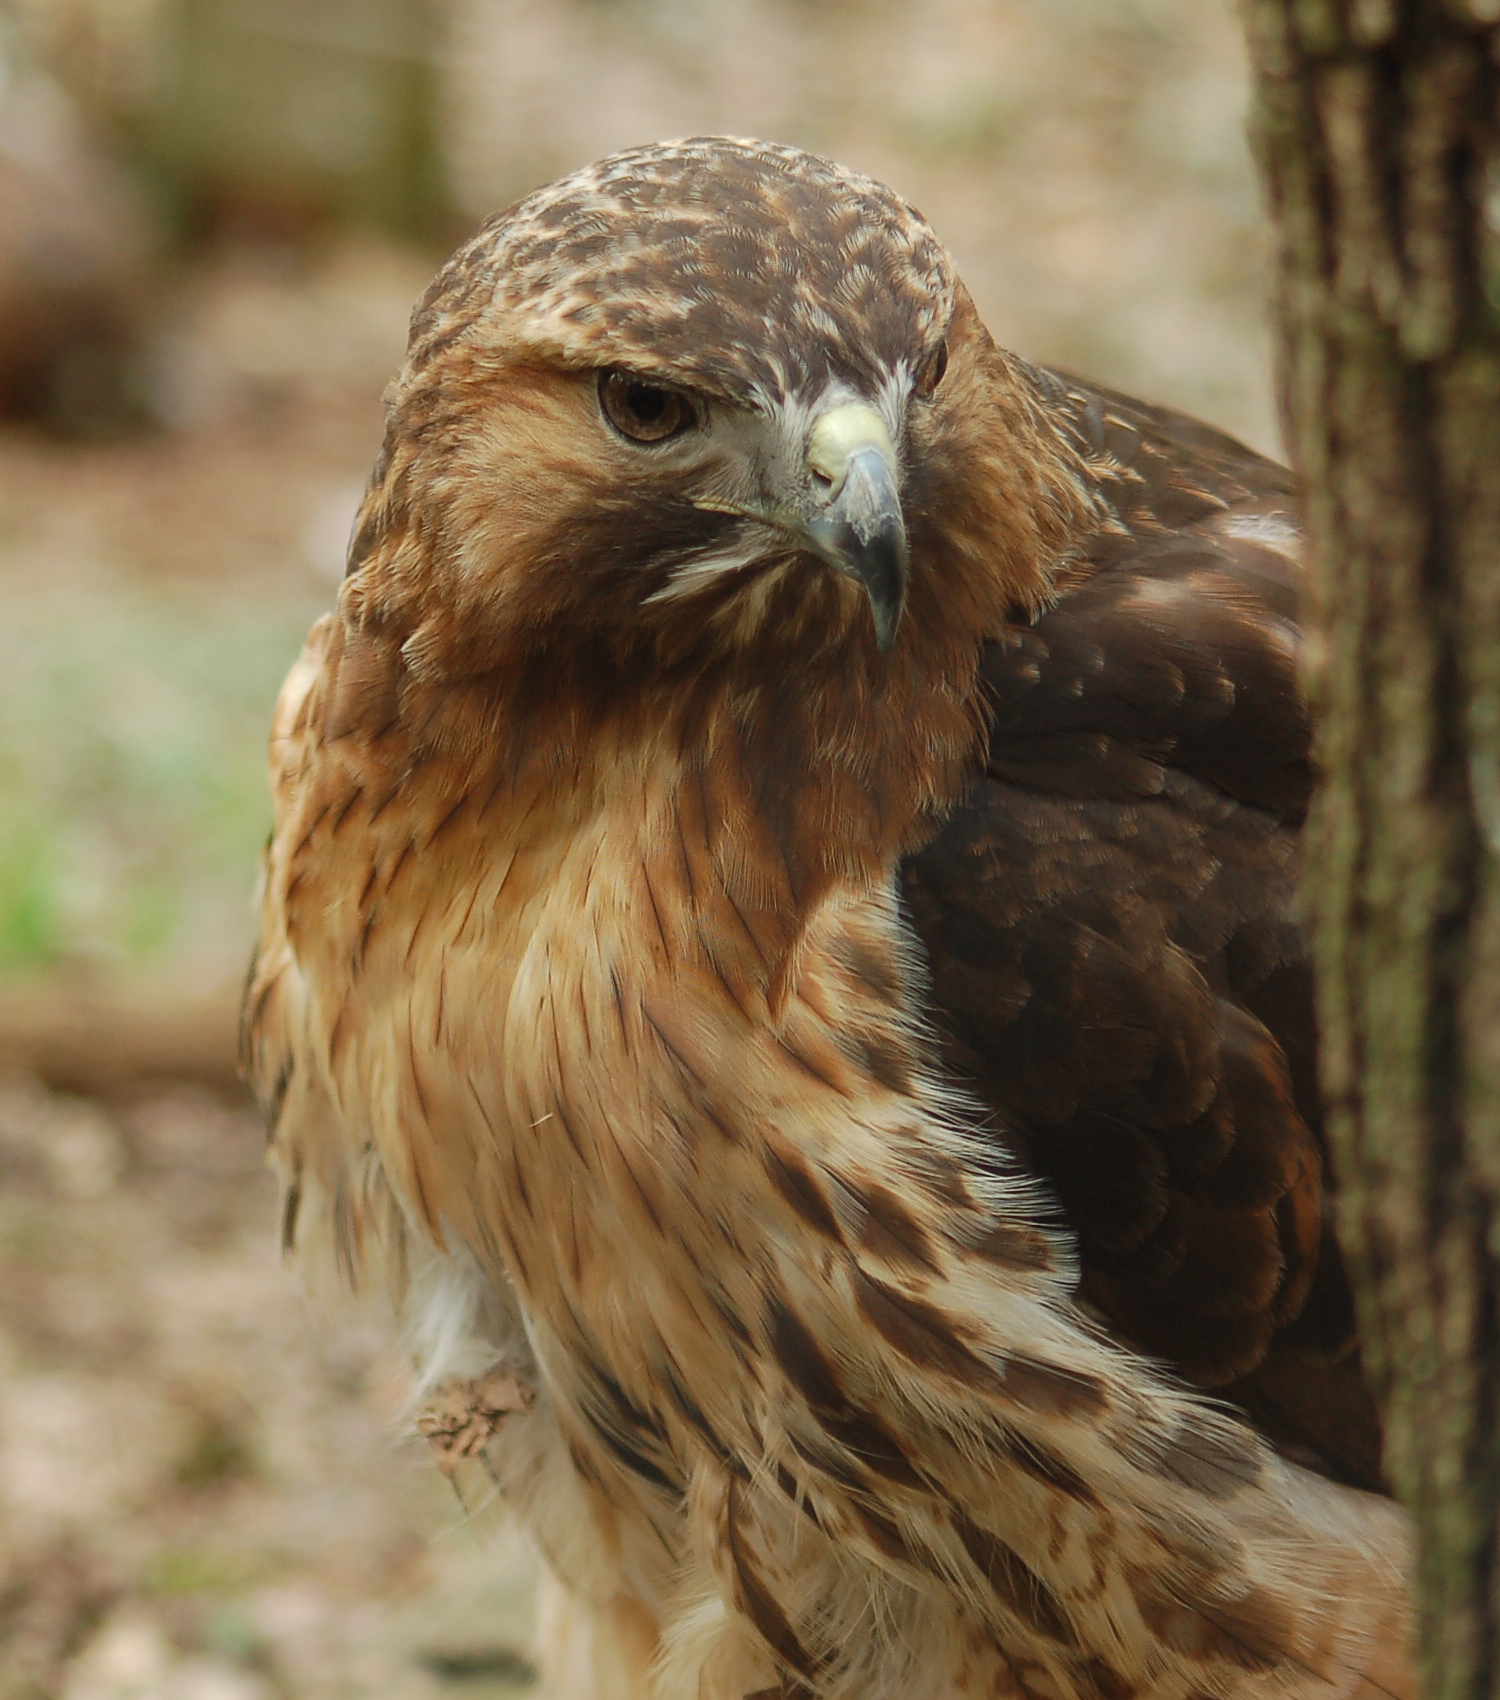 File:Red-tailed Hawk Buteo jamaicensis Head 1500px.jpg ...